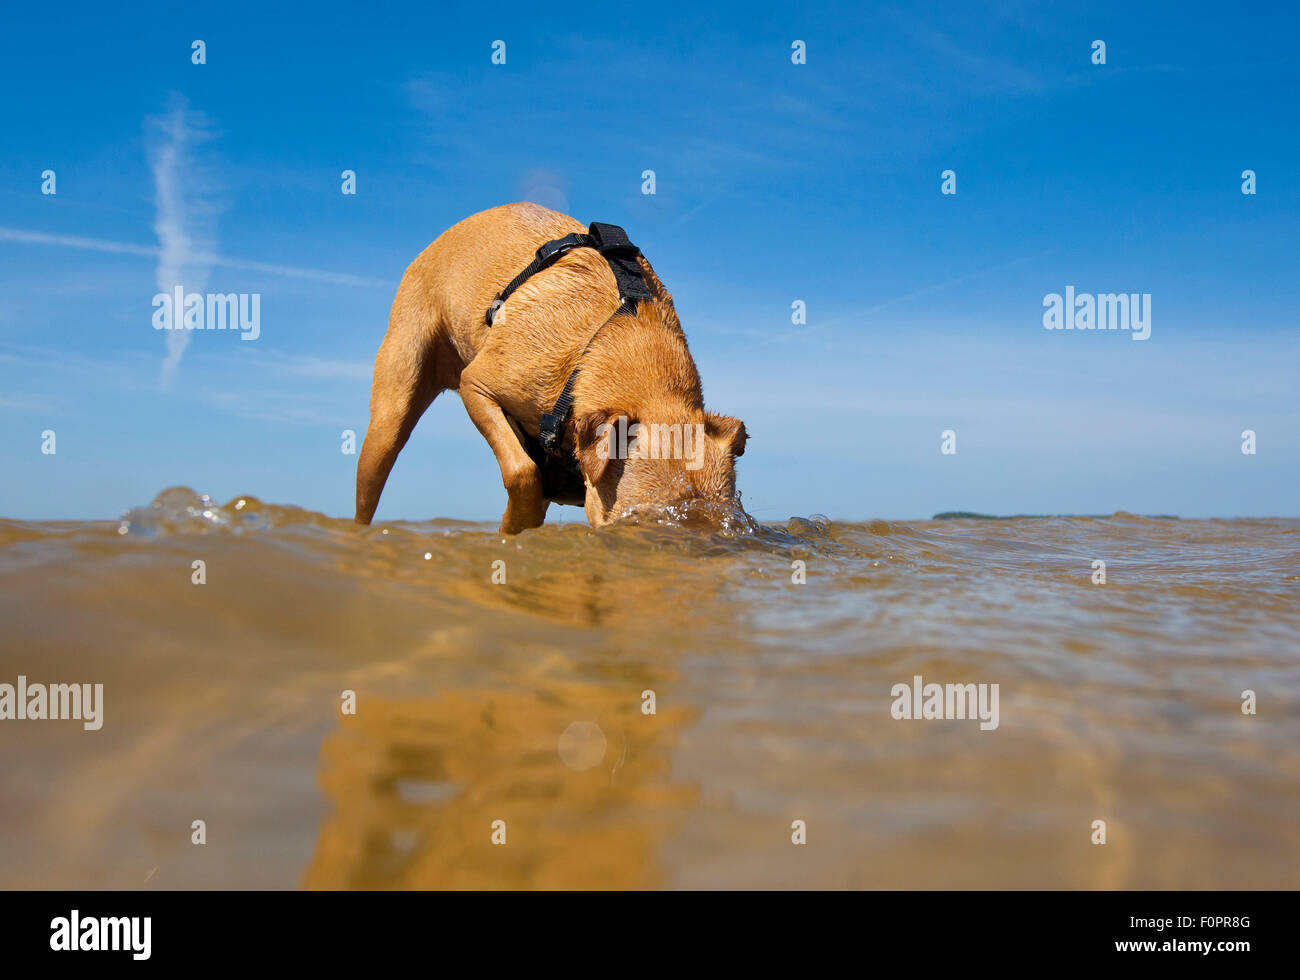 A Dog standing along the shoreline sticking its head underwater to search for crabs - Stock Image